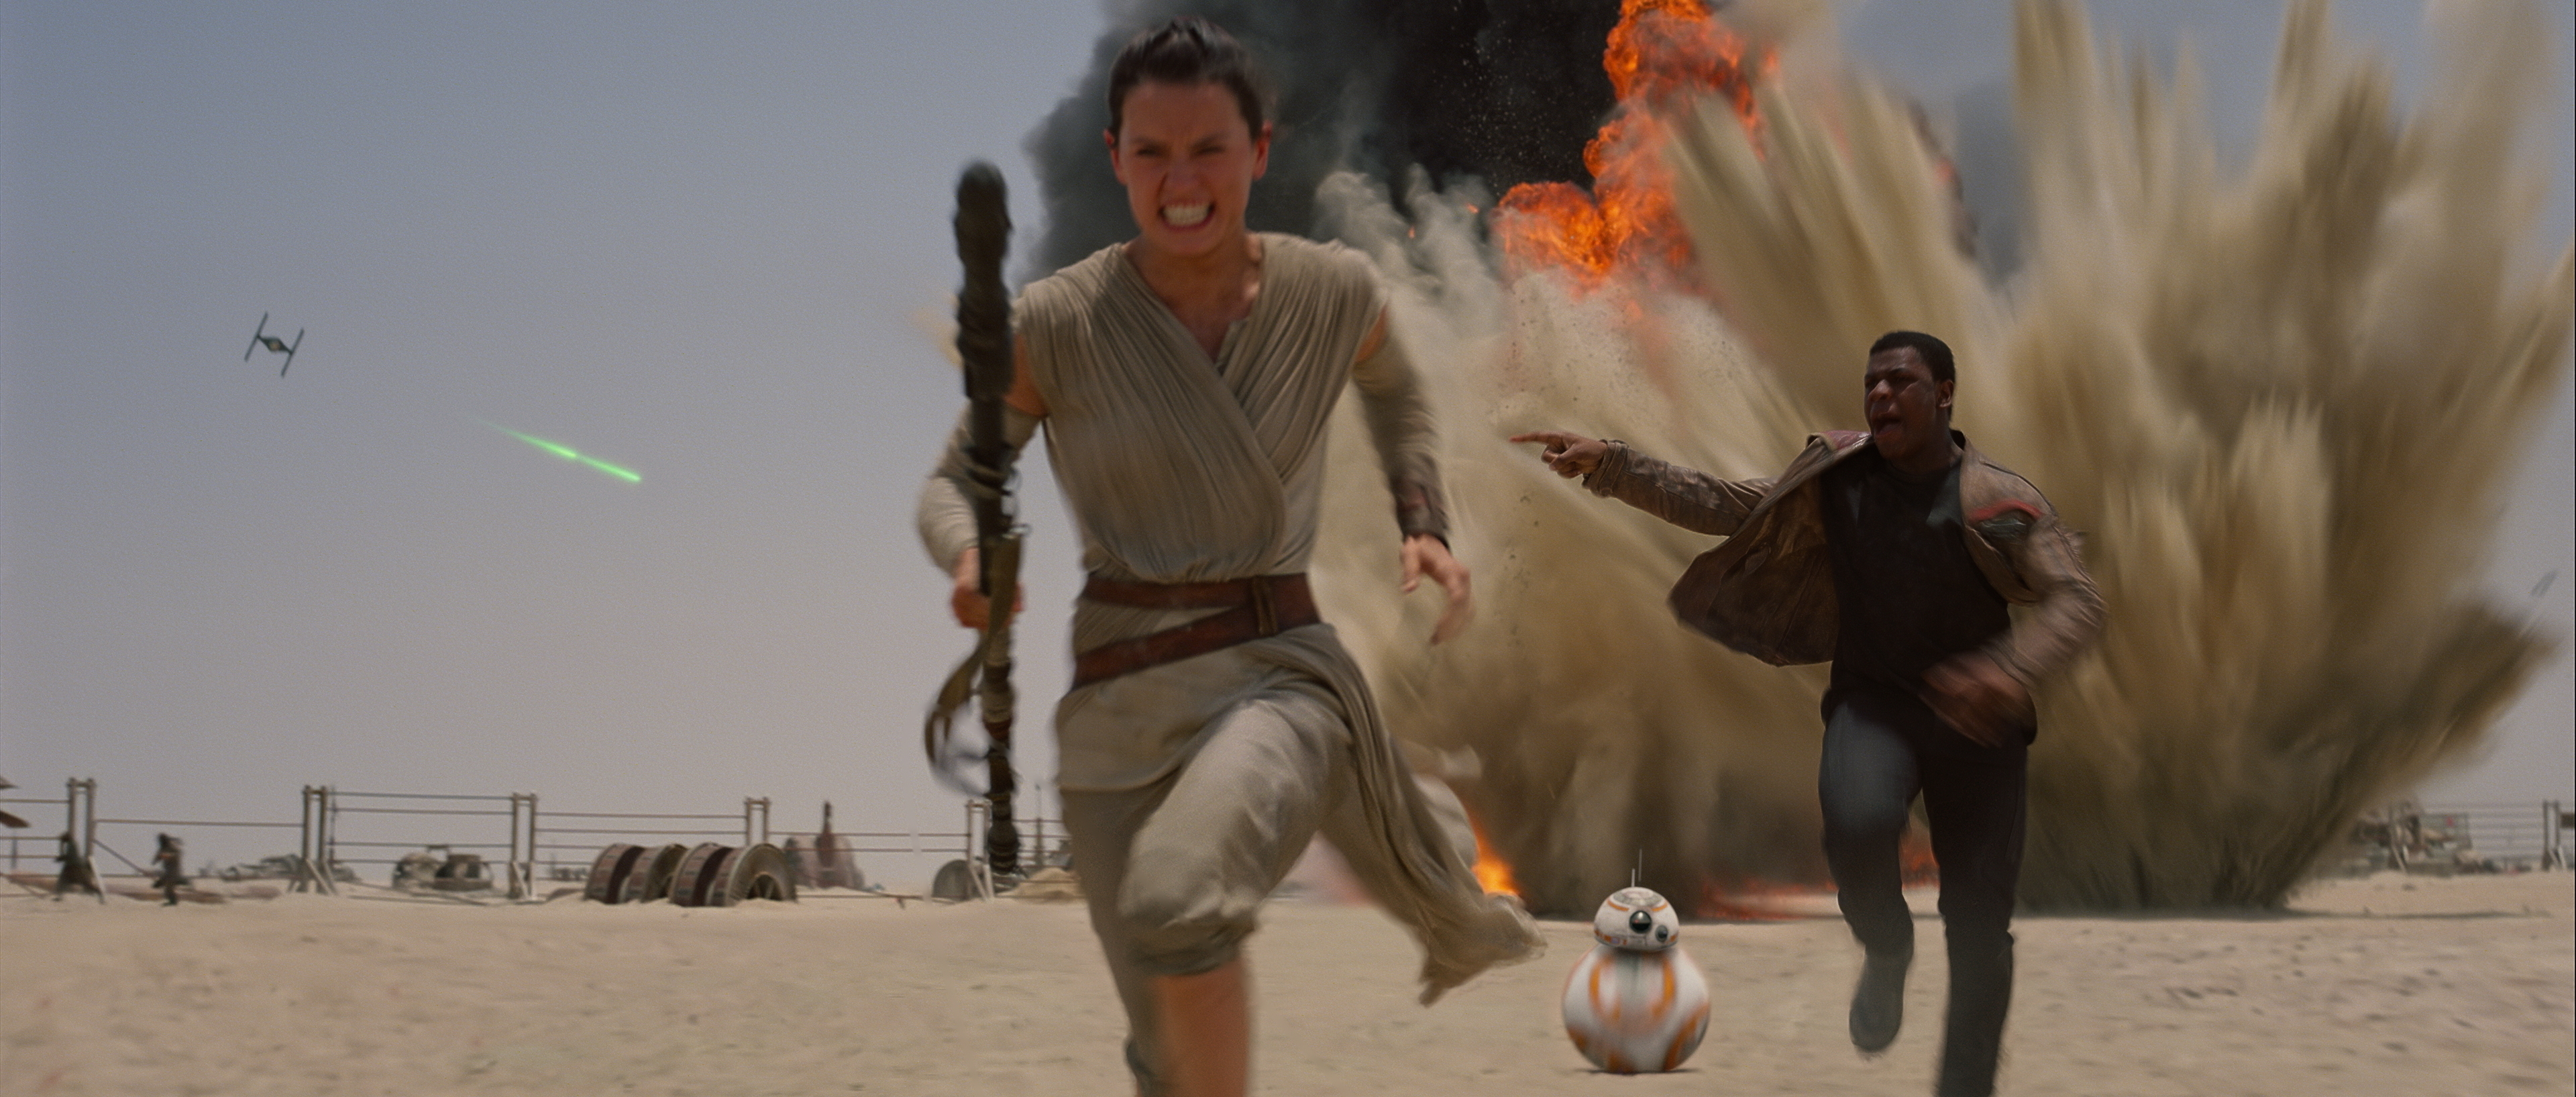 Rey, Finn, and BB-8 on the run from TIE fighters on Jakku.